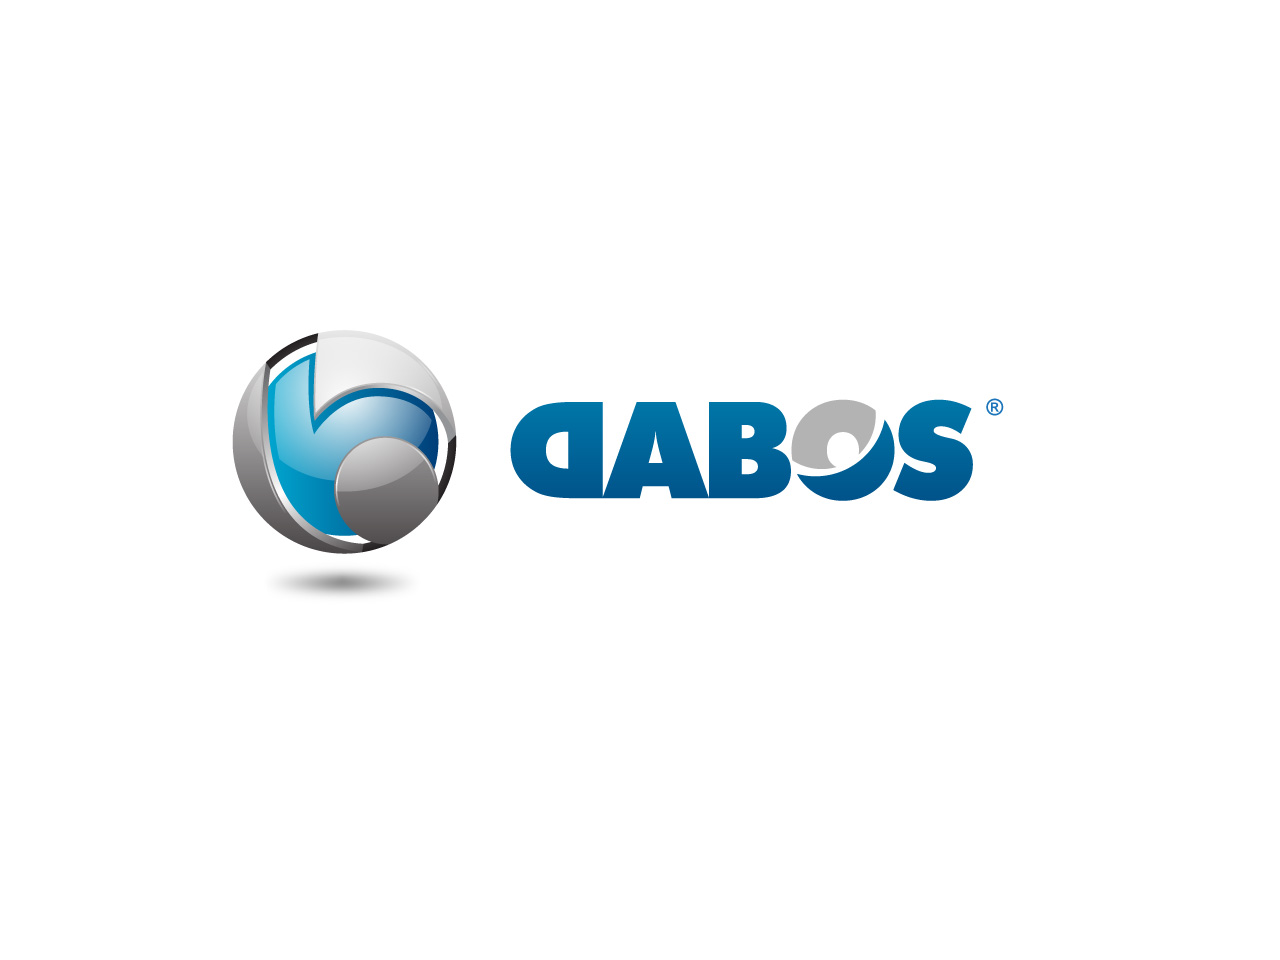 Logo Design by jpbituin - Entry No. 127 in the Logo Design Contest Imaginative Logo Design for DABOS, Limited Liability Company.